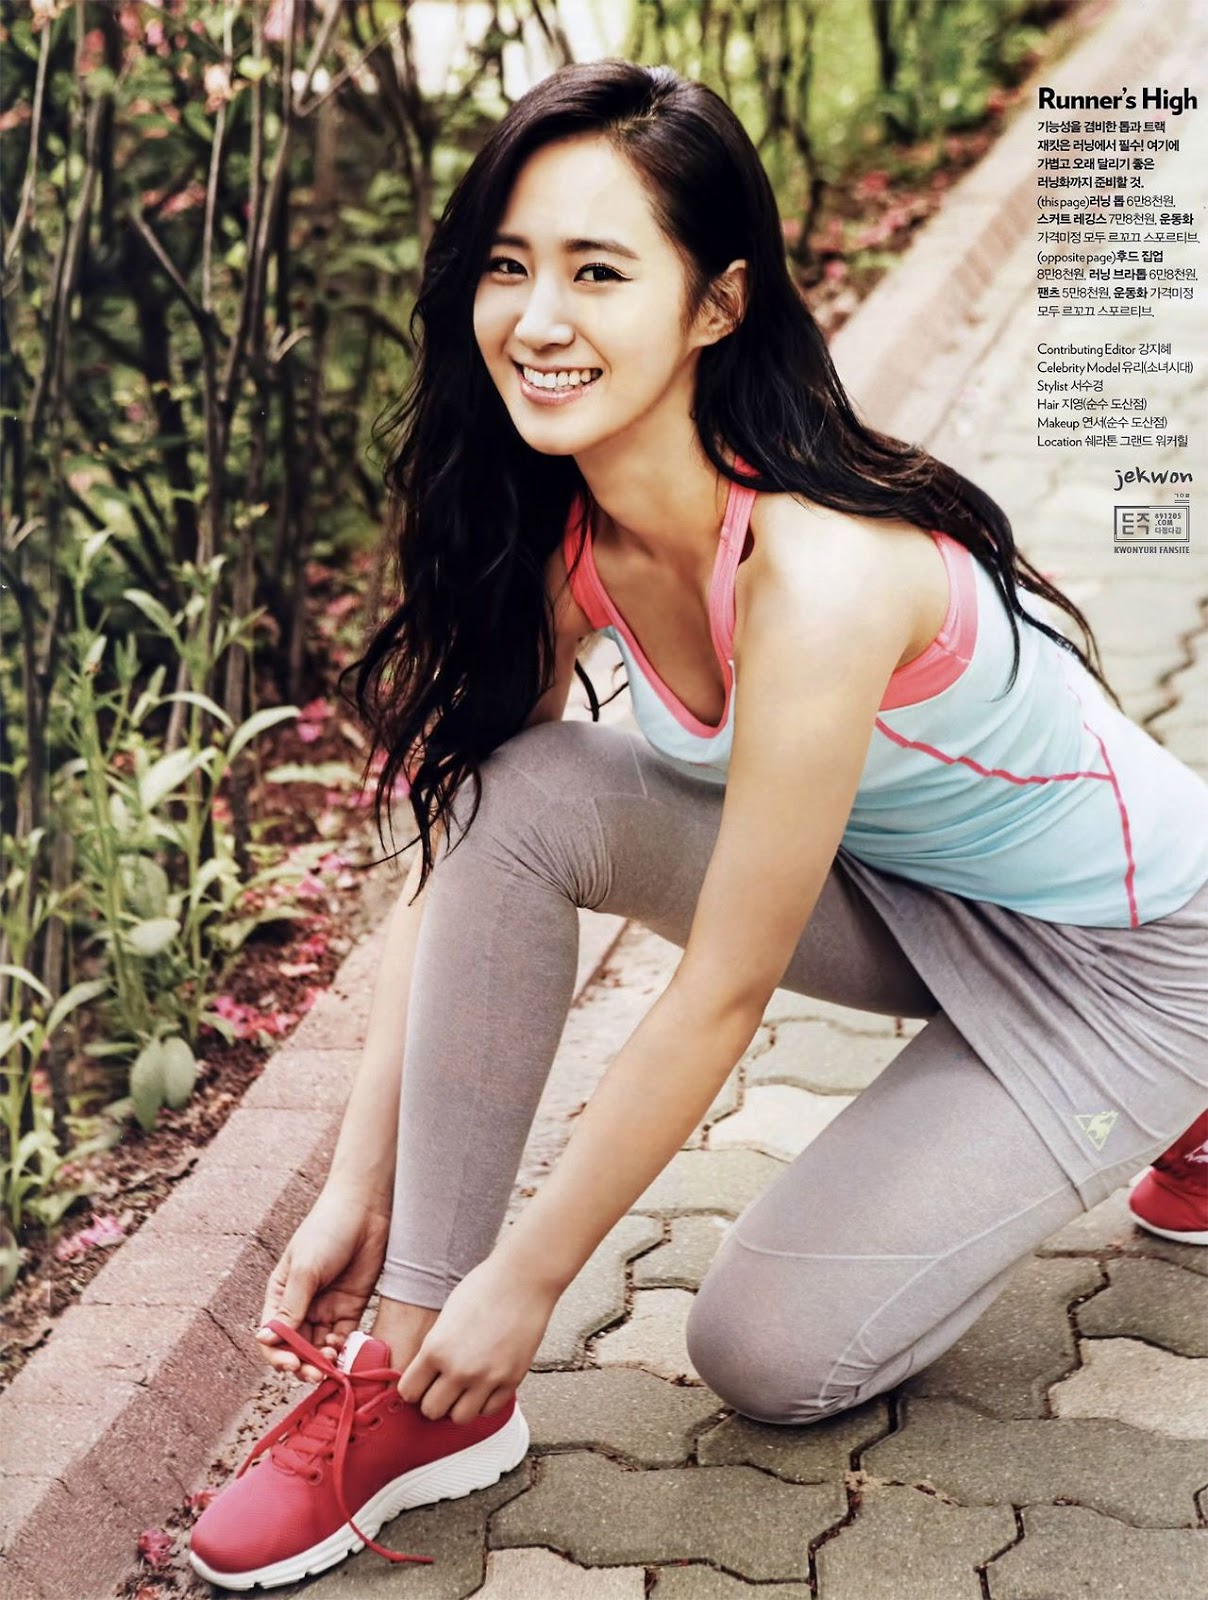 Soshi95: Yuri @ Cosmopolitan Magazine June Issue Pictures 210513